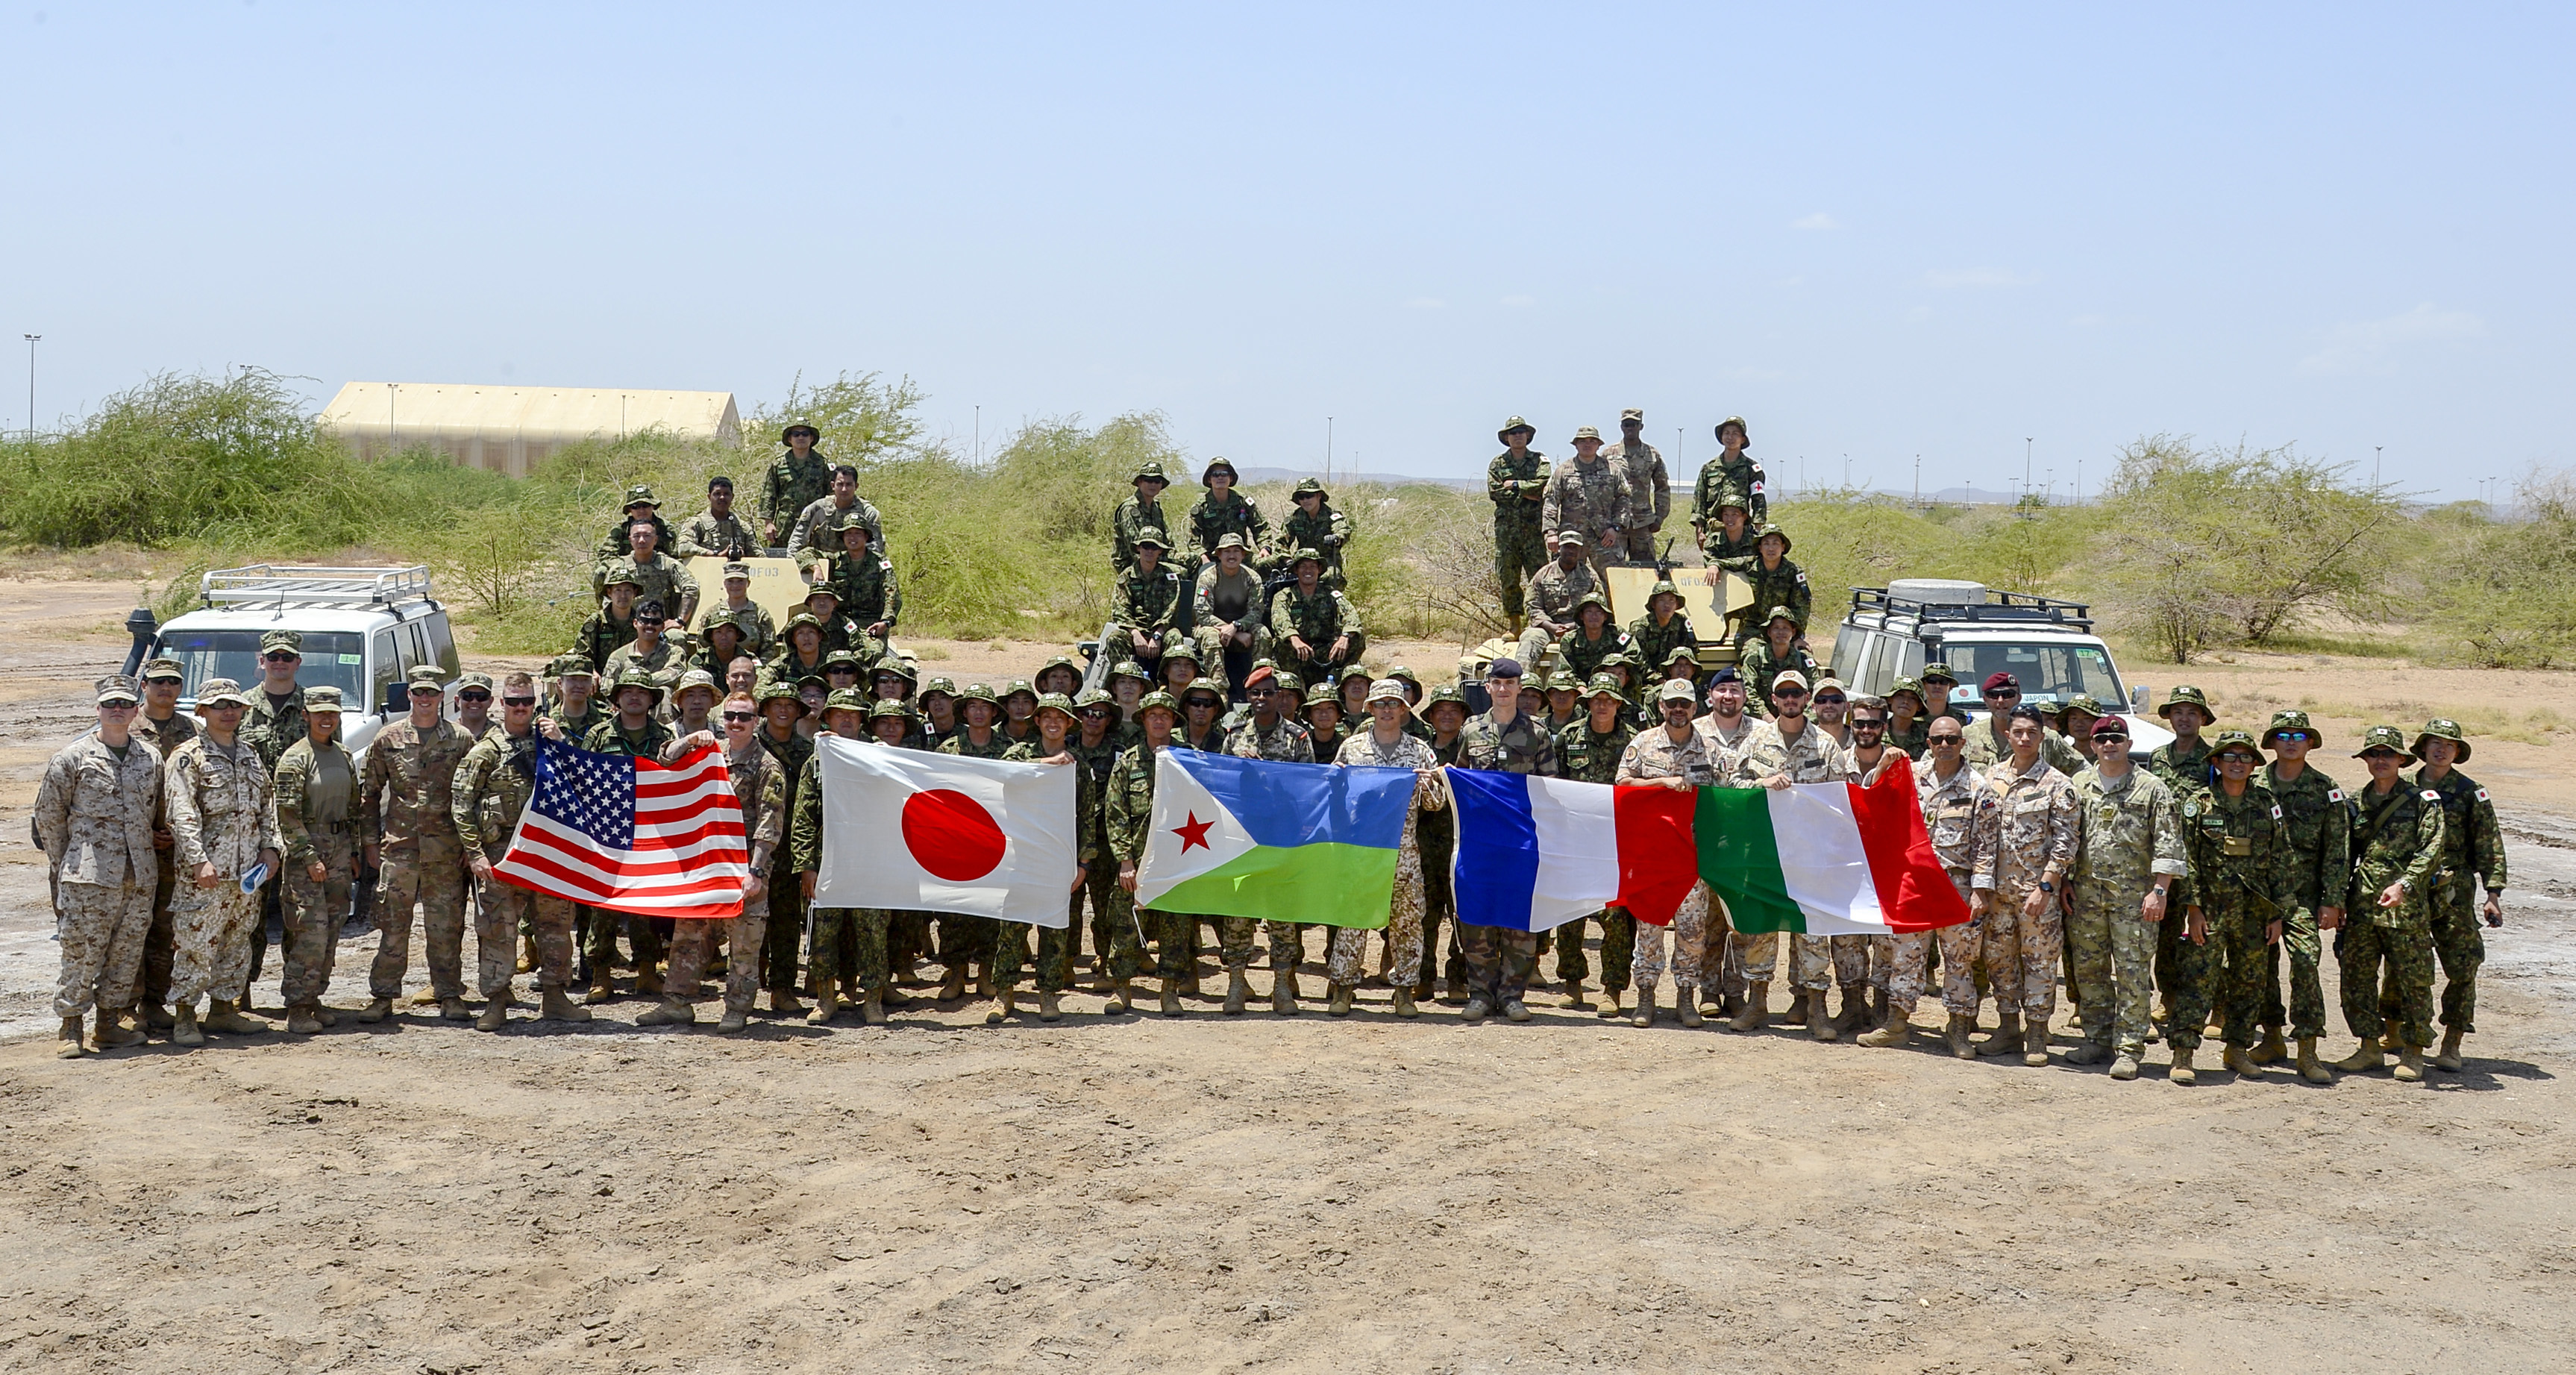 U.S. and coalition forces pose for a group photo following a joint coalition exercise at Camp Lemonnier, Djibouti, Sep. 5, 2018. The joint exercise allowed coalition forces from Italy, Japan, France, and Djibouti to learn alongside the U.S. Army and exchane best practices. (U.S. Navy Photo by Mass Communication Specialist 2nd Class Timothy M. Ahearn)